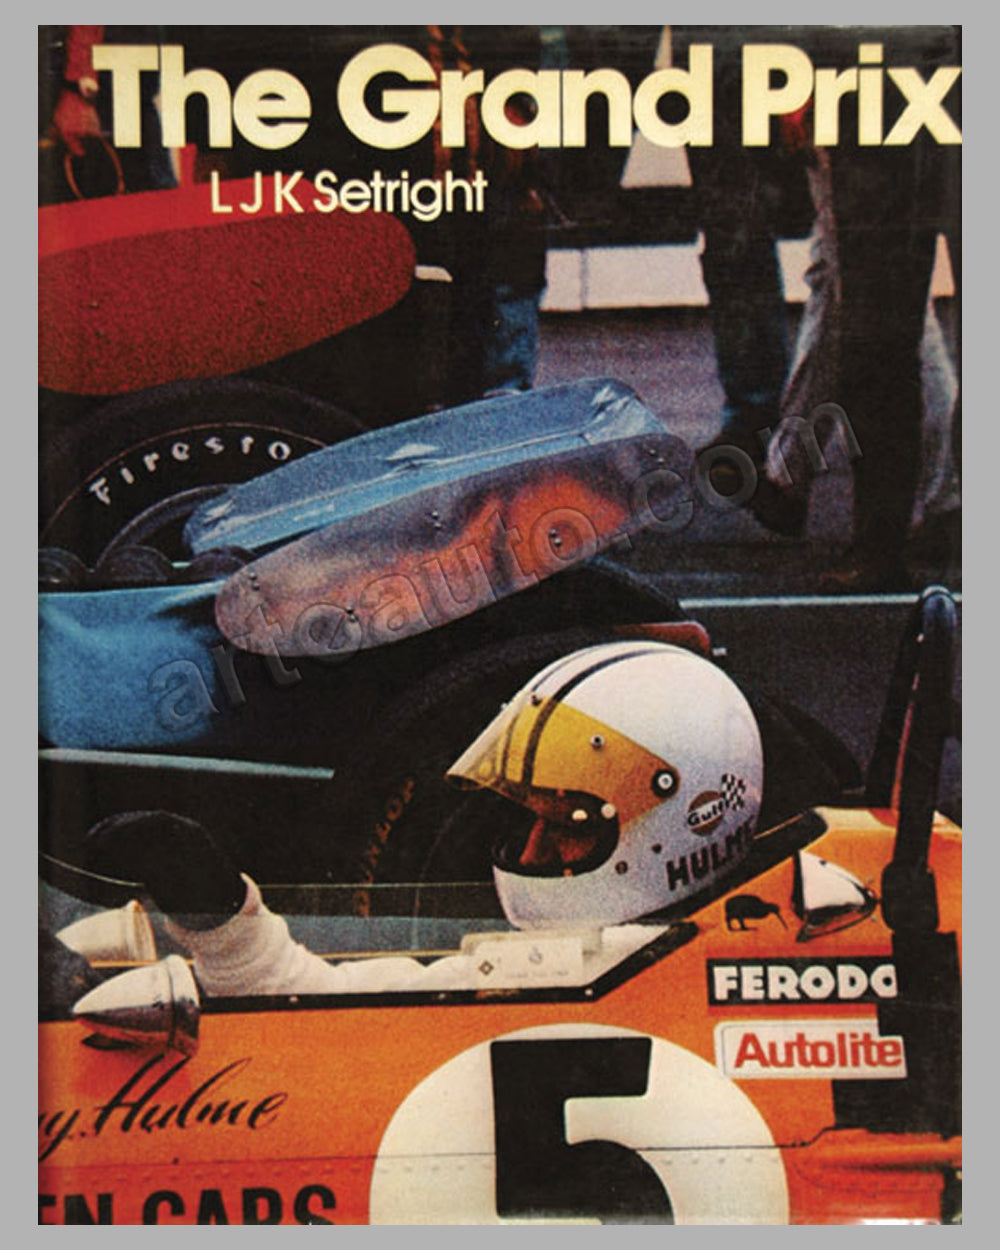 The Grand Prix book by L. J. K. Setright